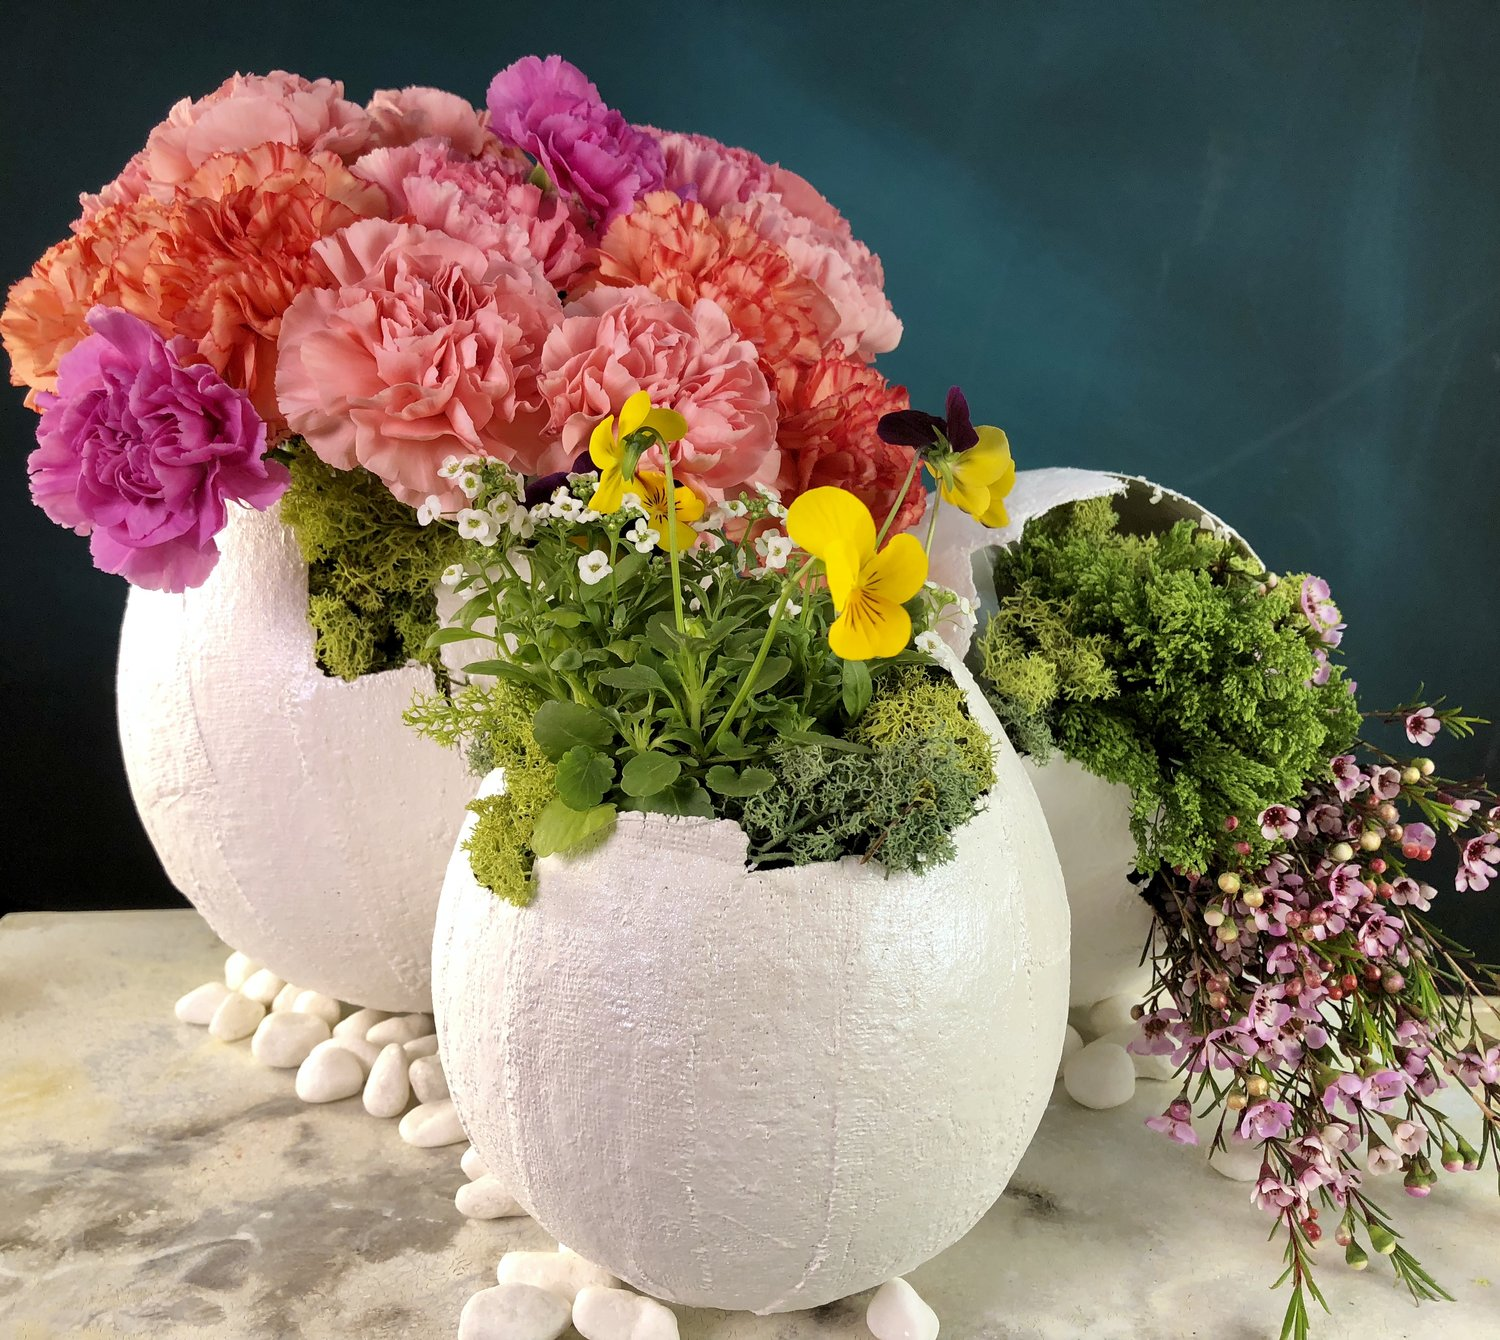 Plaster Easter Egg Vases. Make larger egg vases using plaster strips and balloons. #easterdiy #eastertable #easterdecorations #easterdecor #flowervase #flowers #easycrafts #craftylumberjacks #thechew #clintonscraftcorner #abc #easter